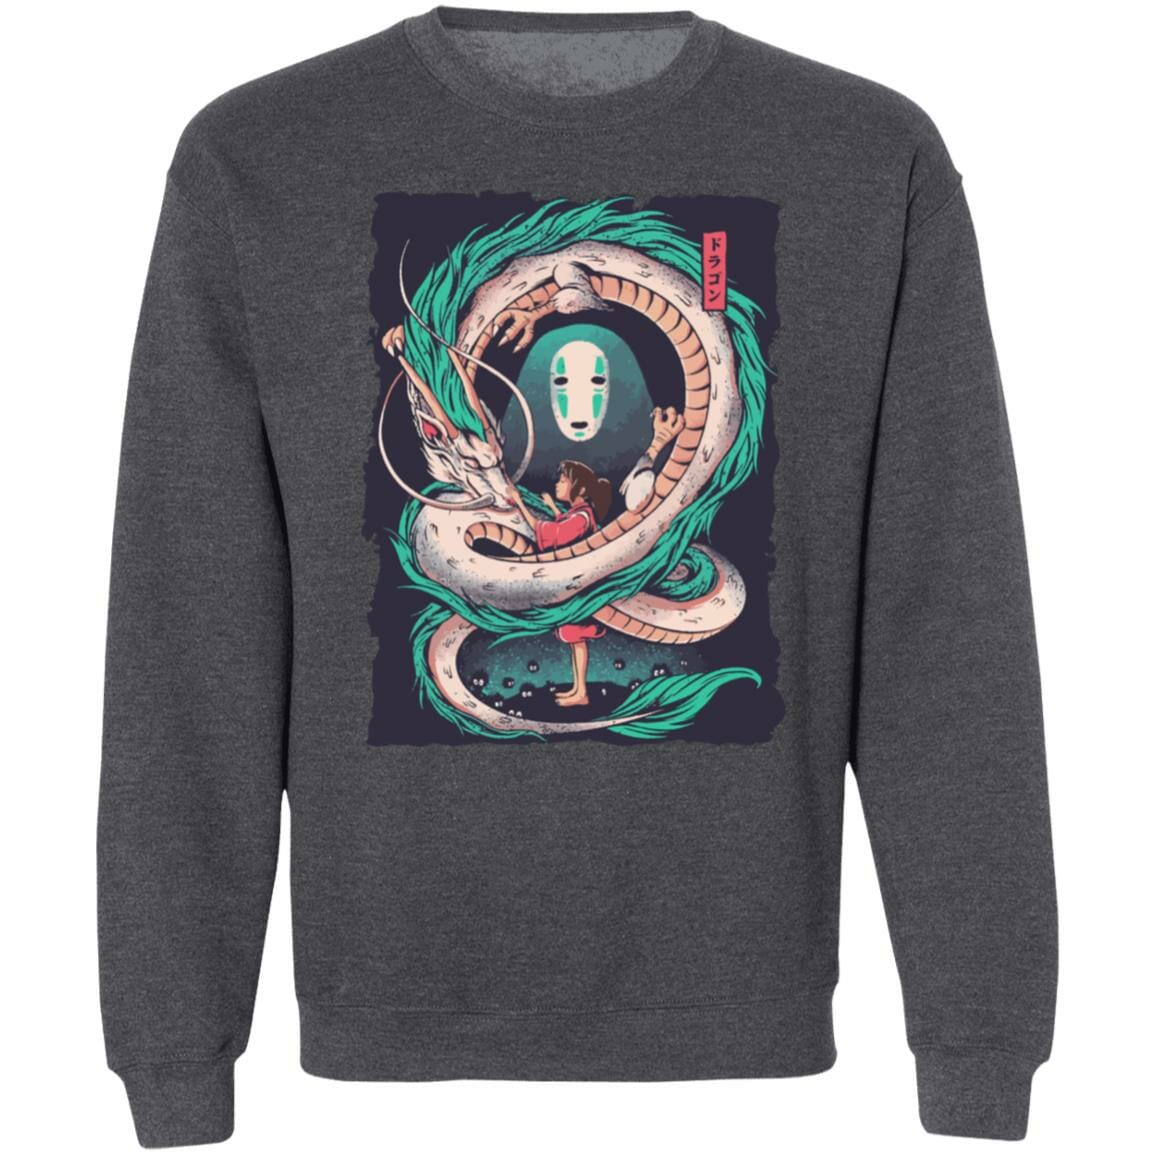 Spirited Away – Haku Dragon with Sen and No Face Sweatshirt